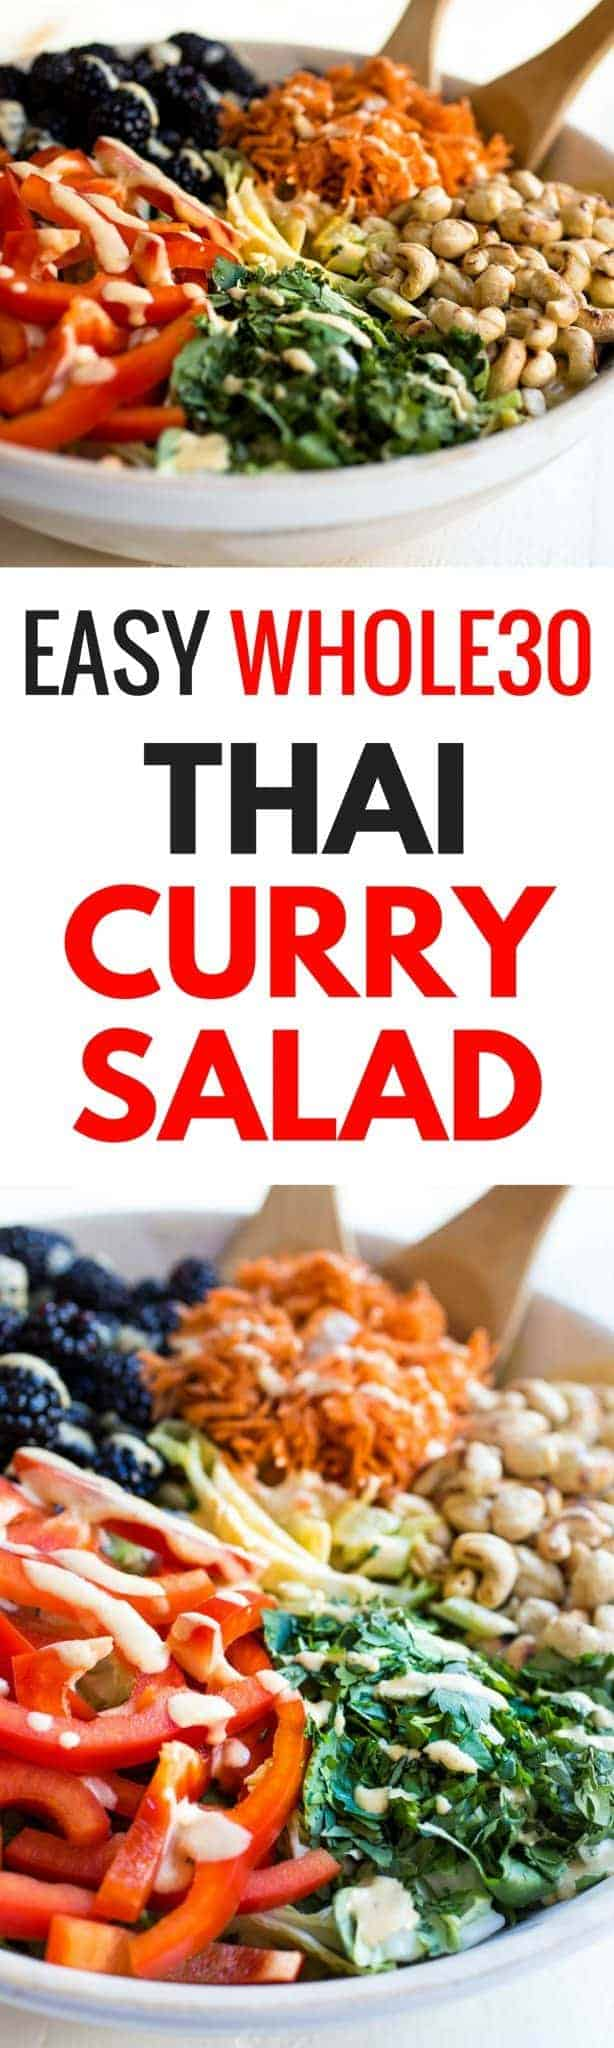 An easy recipe for a delicious, paleo, Whole30 compliant & vegan Thai Curry Salad that will leave you feeling full & satisfied. Whole30 salad recipes. Whole30 dinner recipes. Easy Whole30 recipes can be found here. Quick, easy, healthy, dairy free Thai Curry Salad!